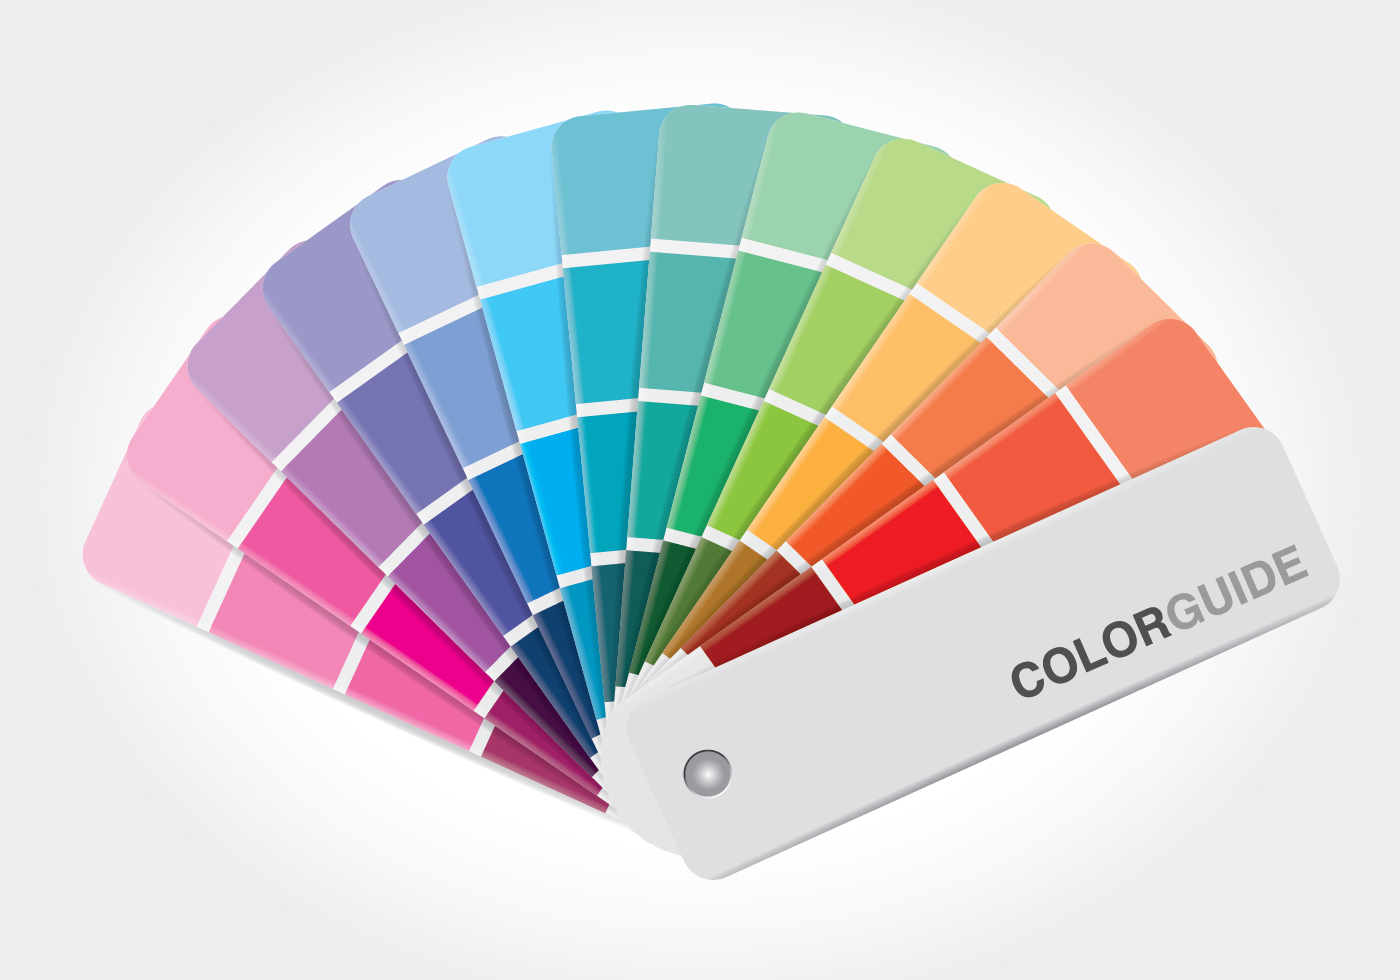 Color Guide Book Vector - Download Free Vector Art, Stock Graphics ...